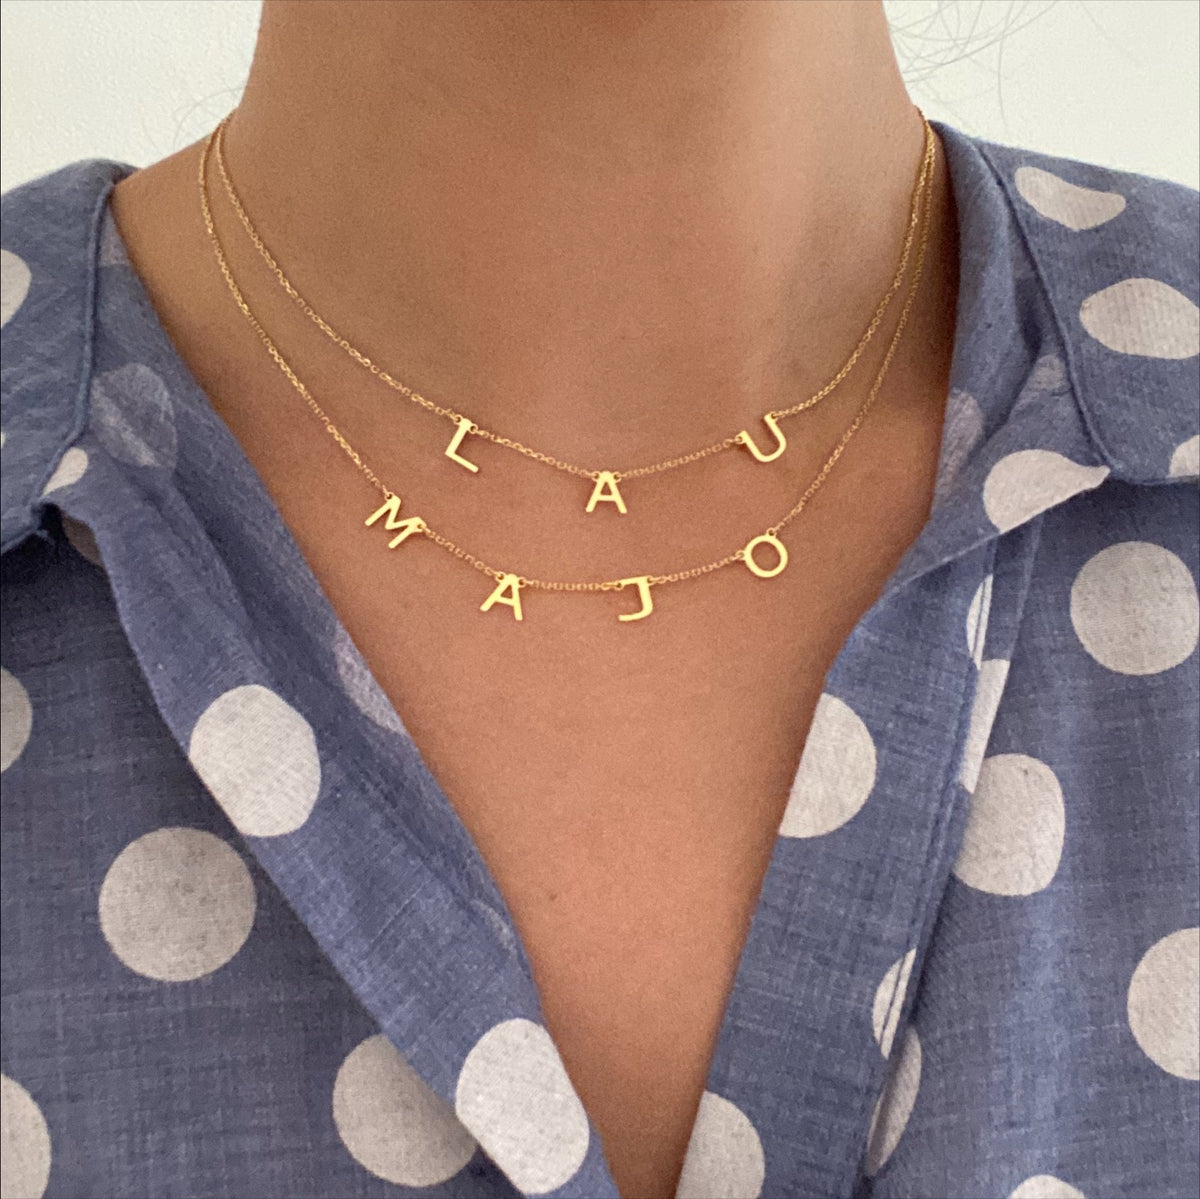 Oui Necklace - Solid Gold